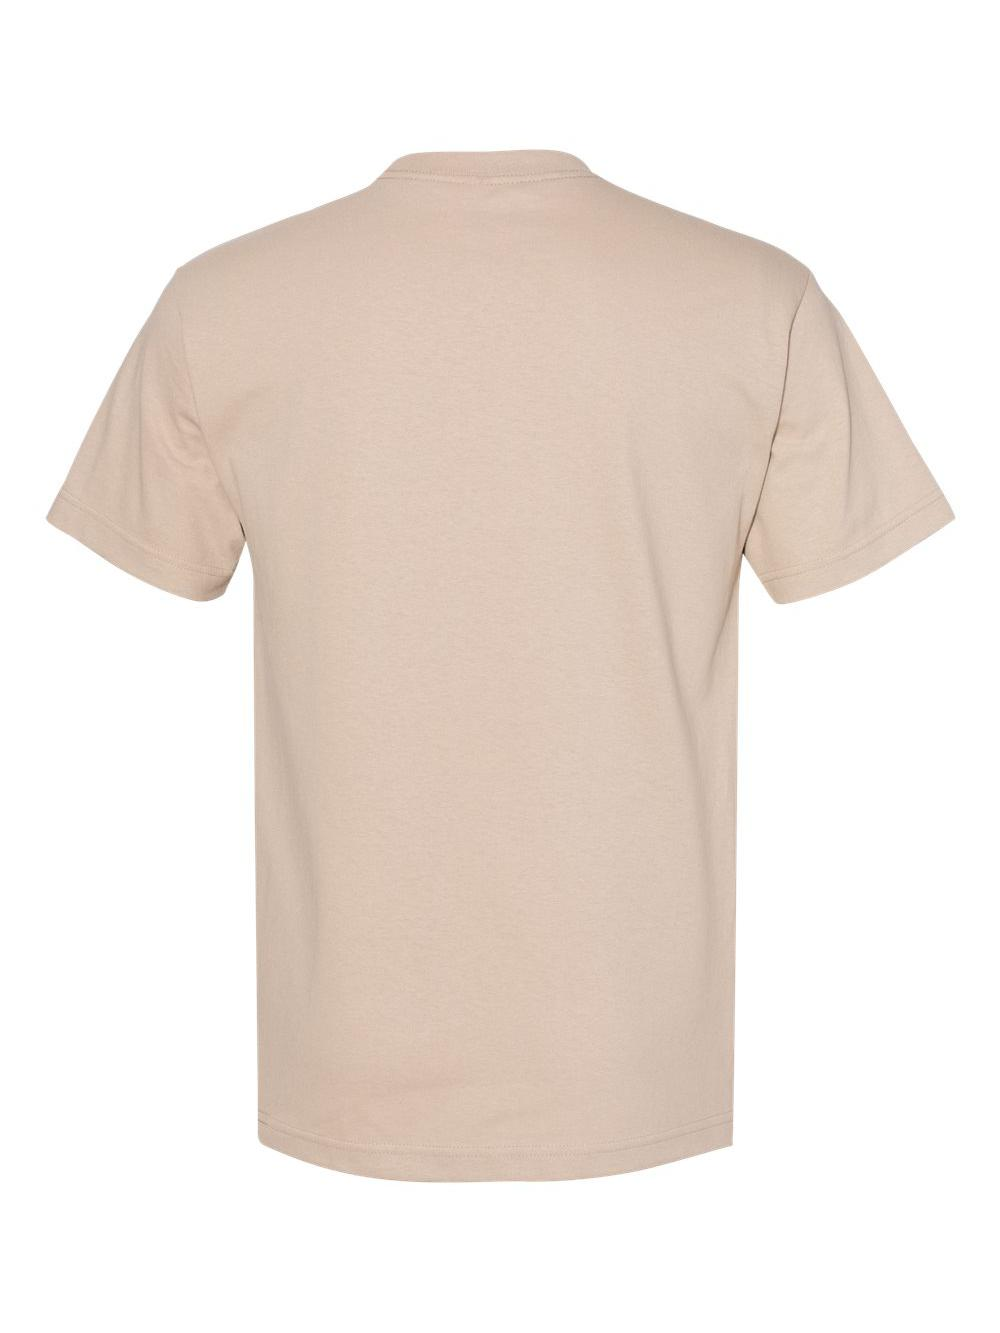 ALSTYLE-Classic-T-Shirt-1301 thumbnail 78